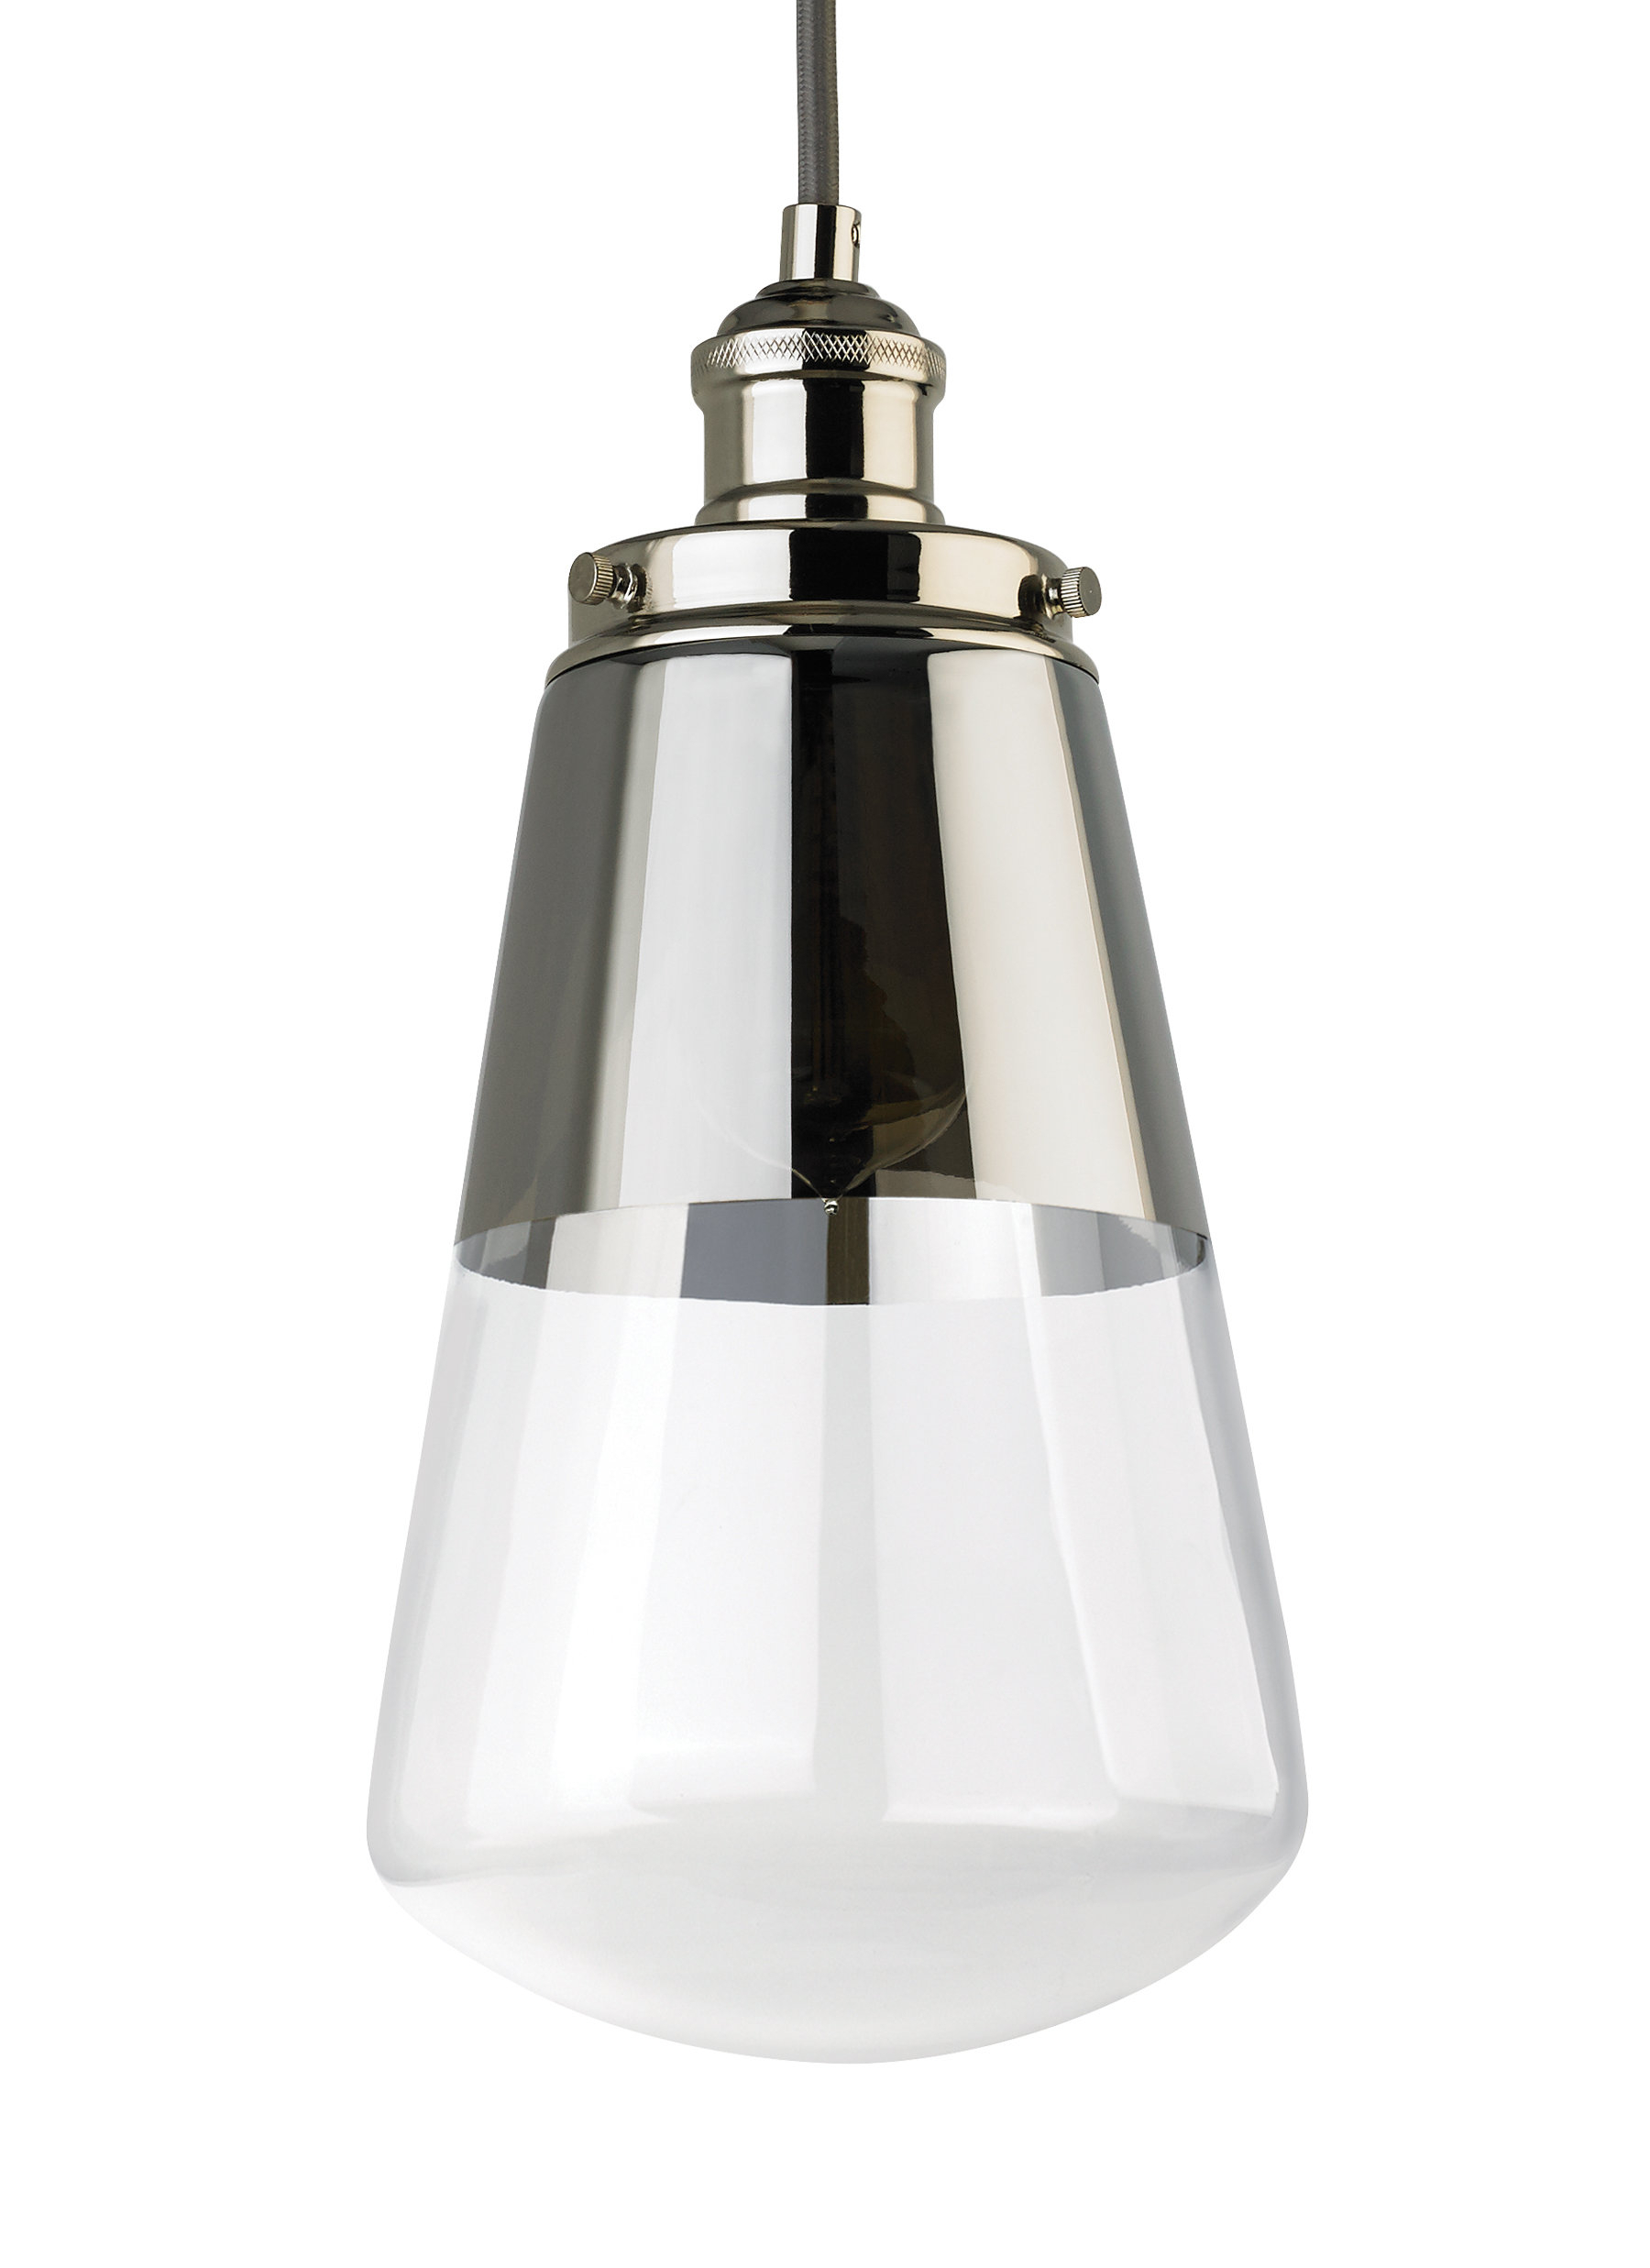 Jarne 1 Light Bulb Pendant Intended For Most Recently Released Ammerman 1 Light Cone Pendants (View 13 of 25)